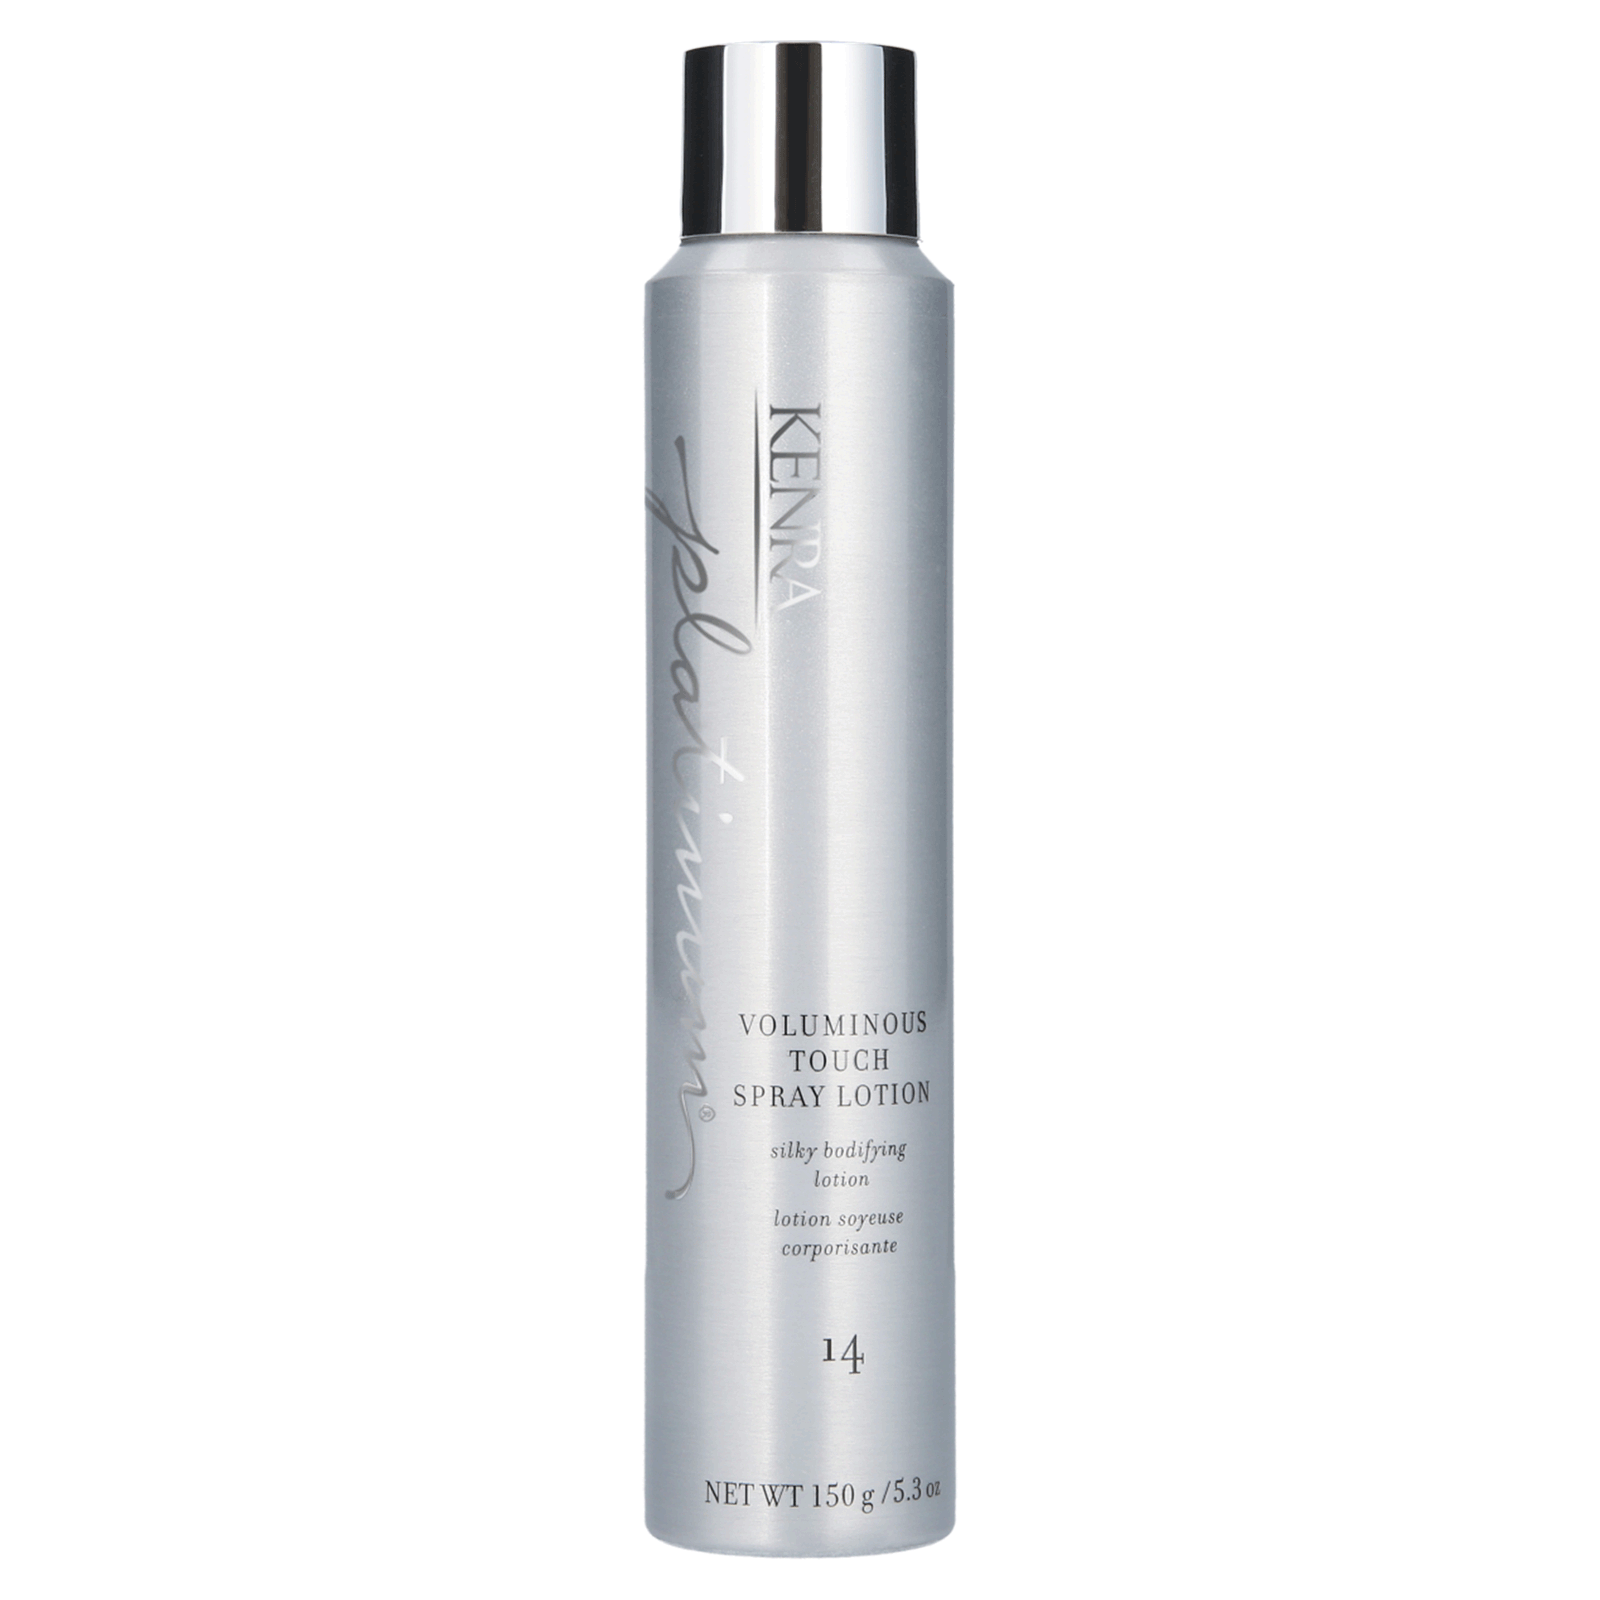 Voluminous Touch Spray Lotion 14